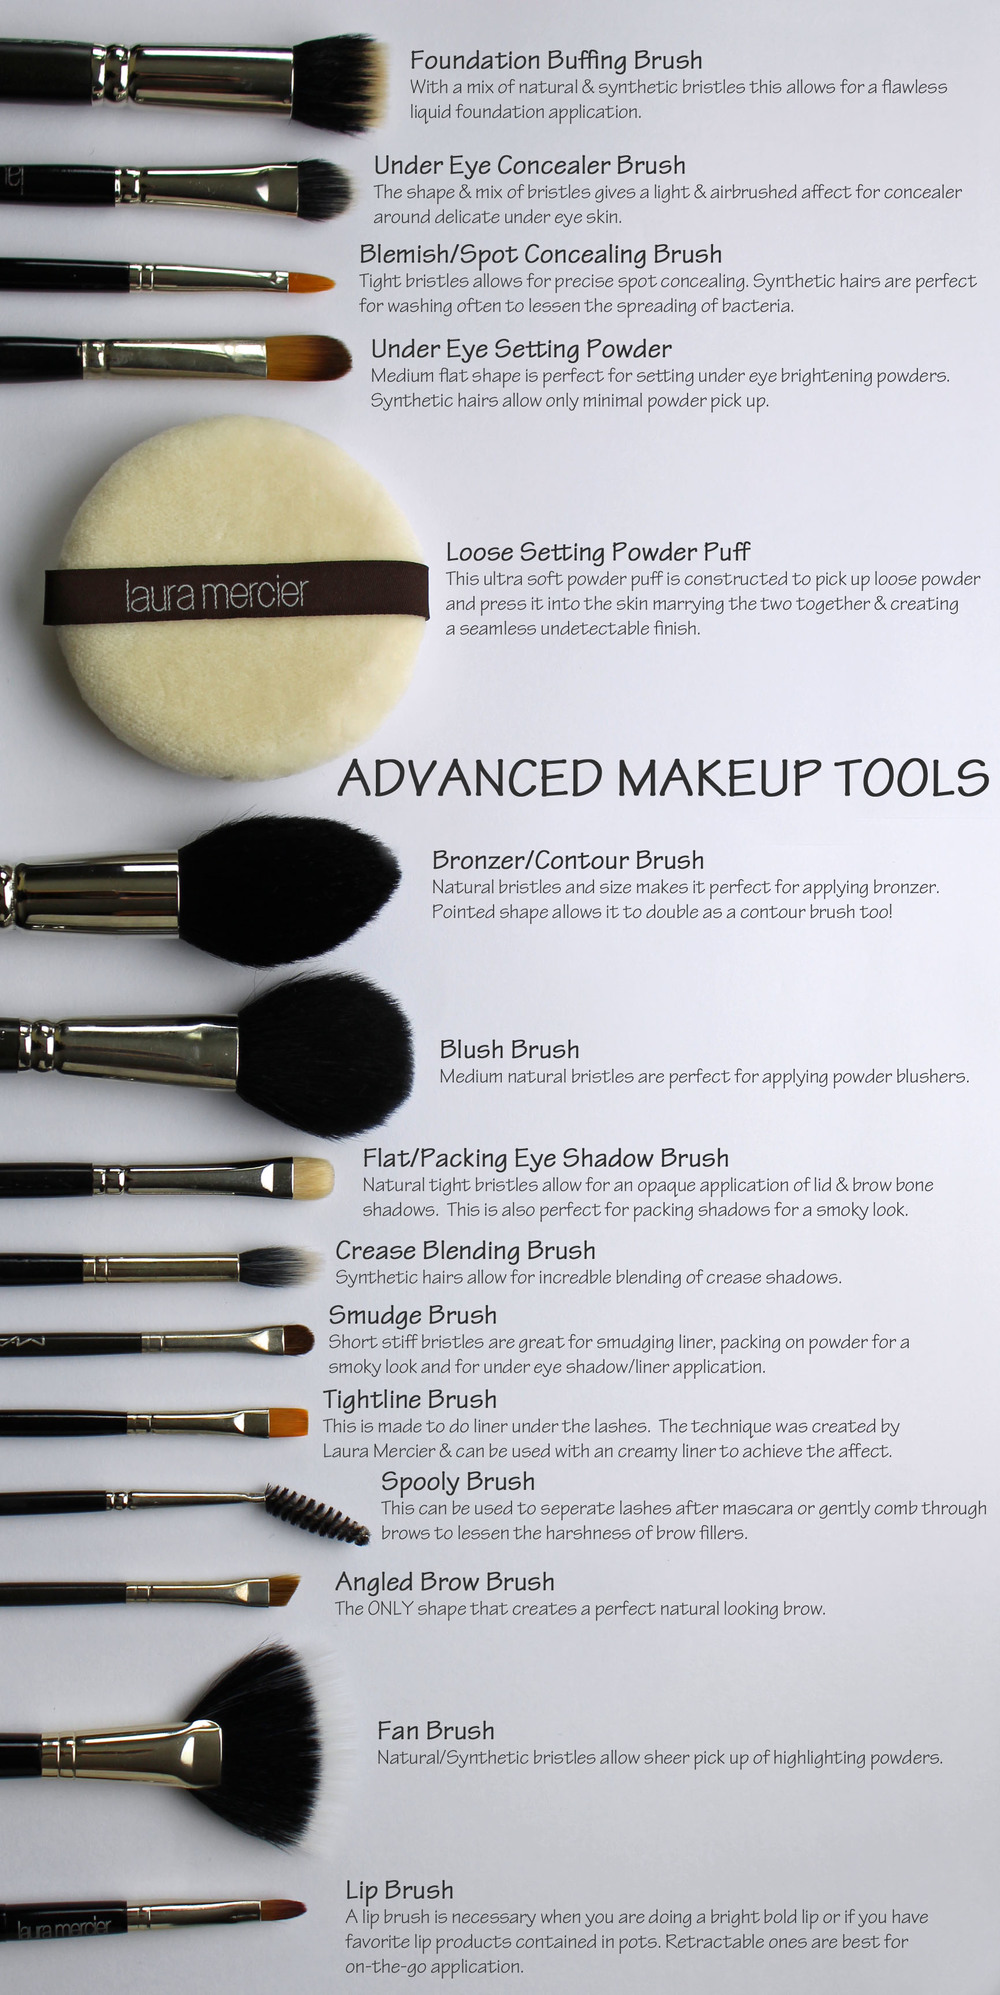 Advanced-Makeup-Tools.jpg